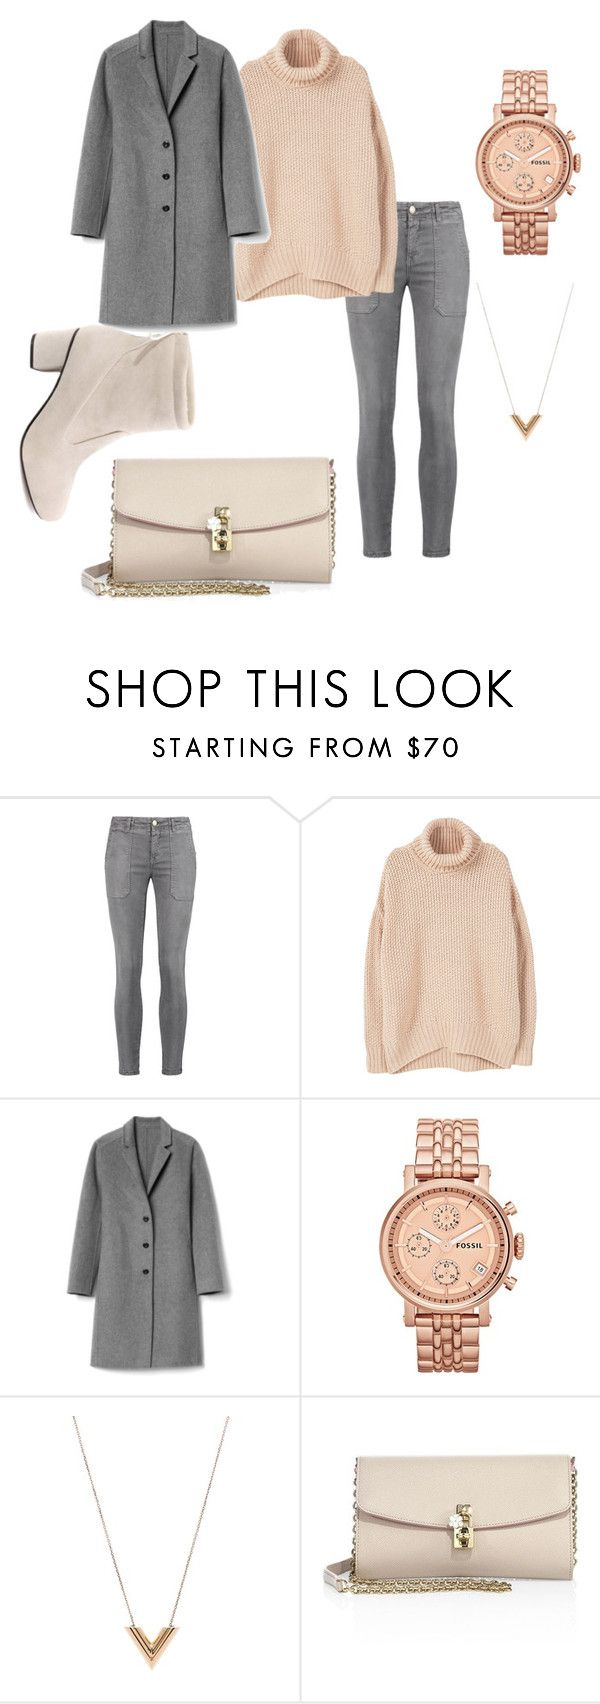 """""""Peaches"""" by dochoa on Polyvore featuring Current/Elliott, MANGO, Gap, FOSSIL, Louis Vuitton and Dolce&Gabbana"""